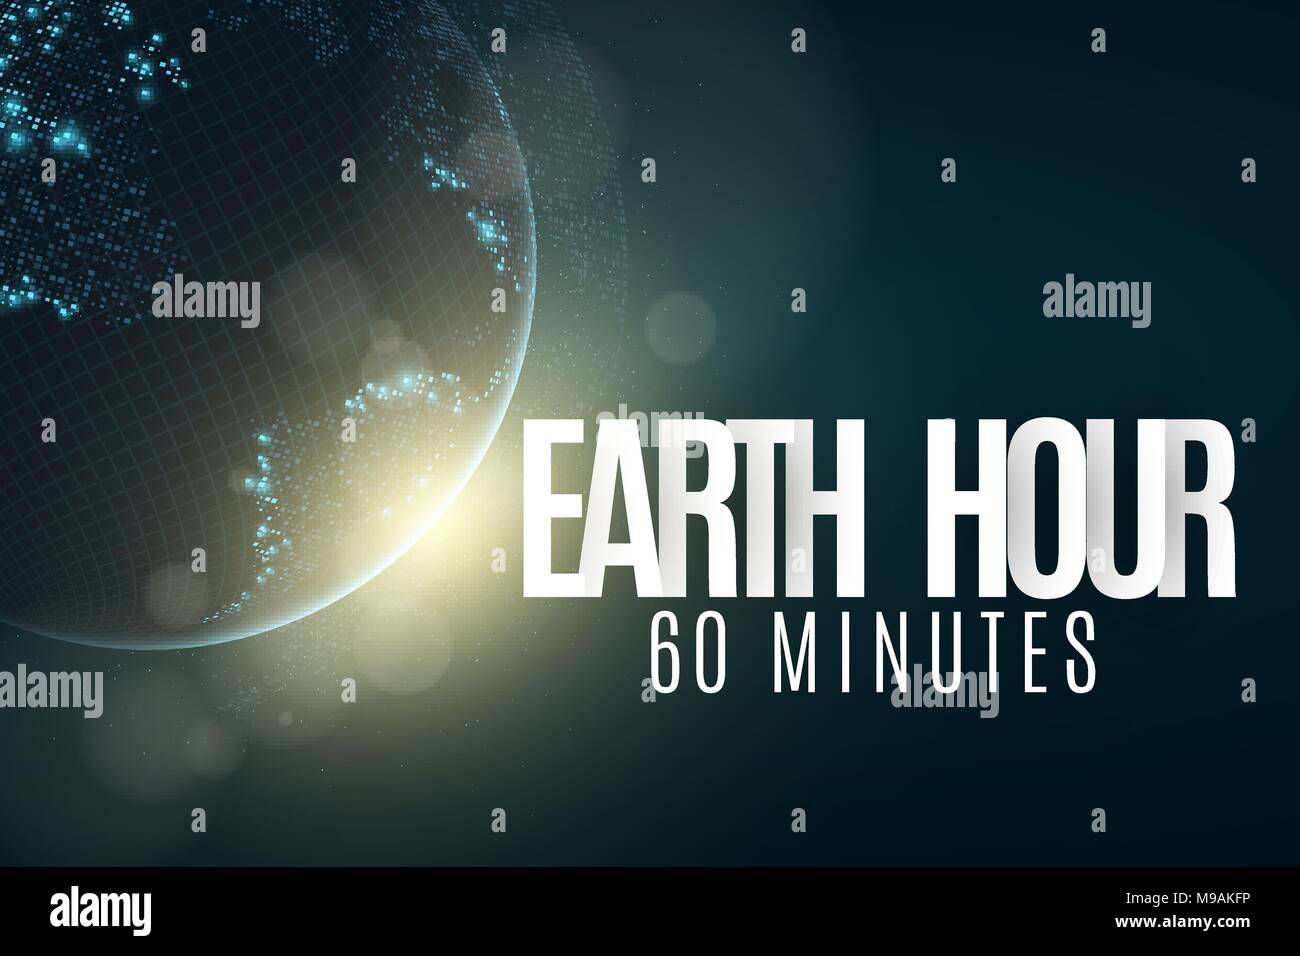 Earth hour futuristic planet earth 60 minutes without electricity earth hour futuristic planet earth 60 minutes without electricity 3d paper letters sunrise global holiday clock go abstract world map sunrise gumiabroncs Image collections